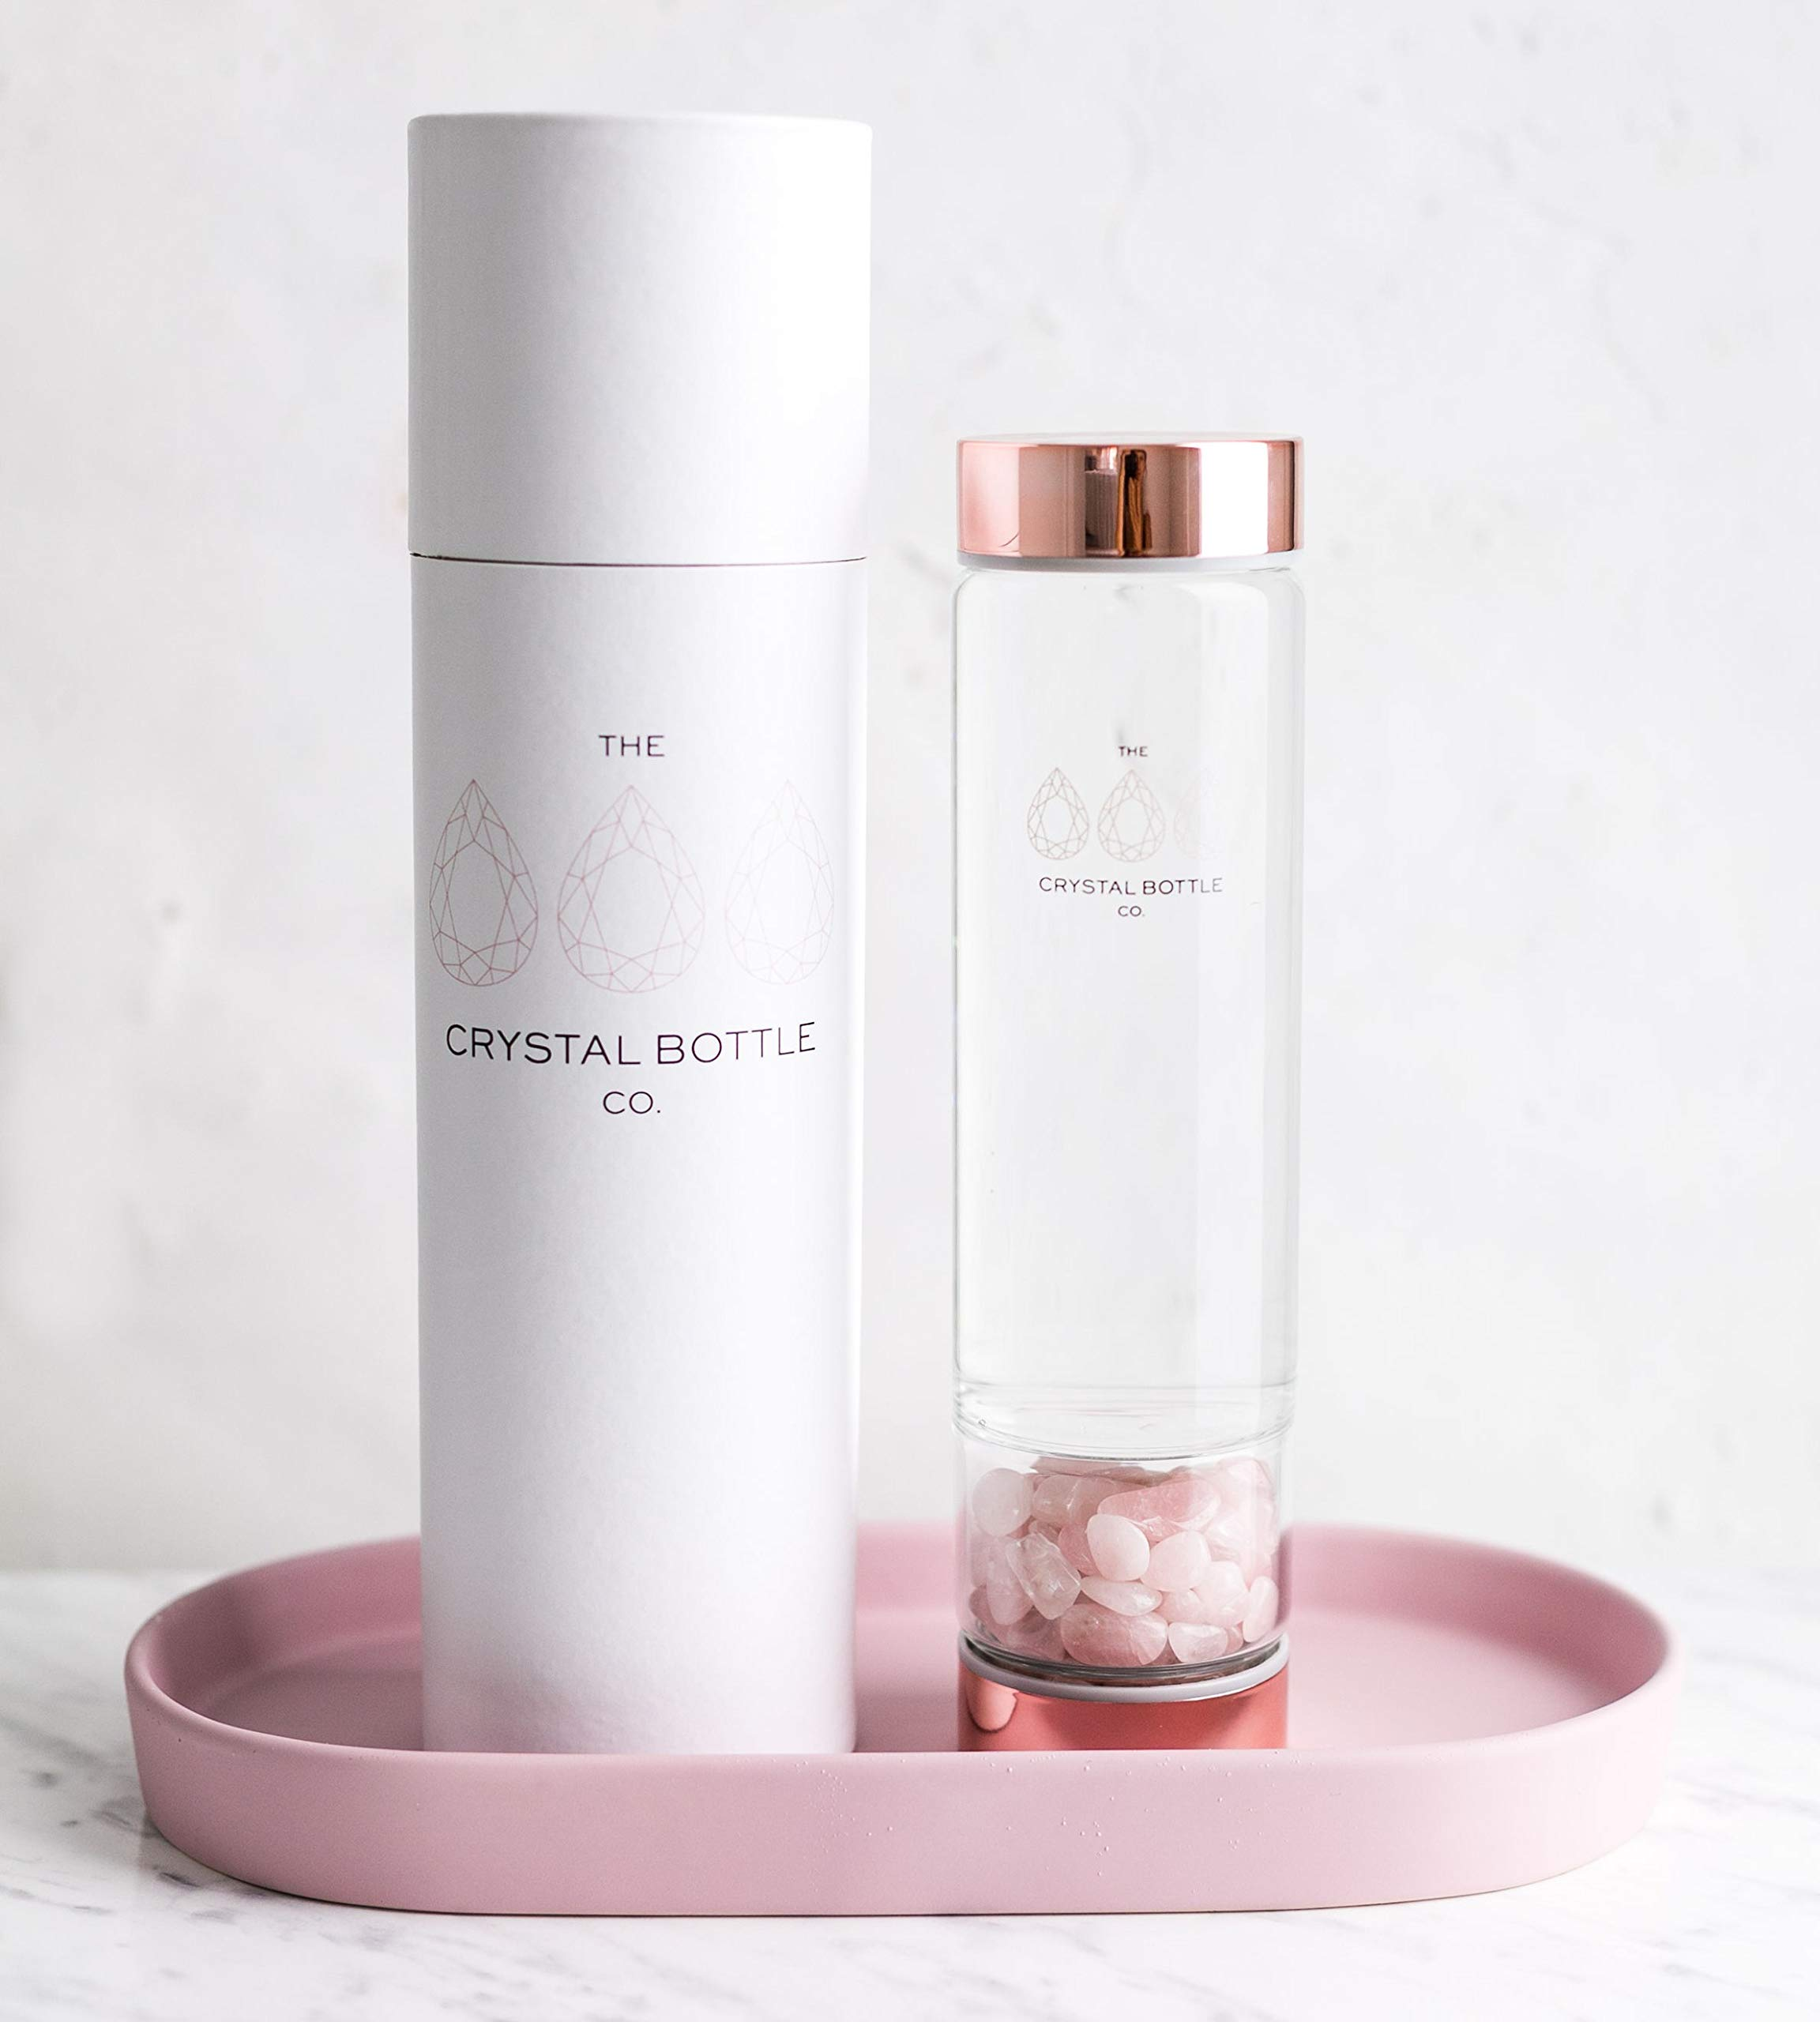 Crystal Elixir Glass Water Bottle - Gemstone Wellness Dispenser with Rose Quartz Crystal Included to Infuse Water for Healing with Rose Gold lids a Great Gift idea for Women and Bridesmaids BPA Free by The Crystal Bottle Co.